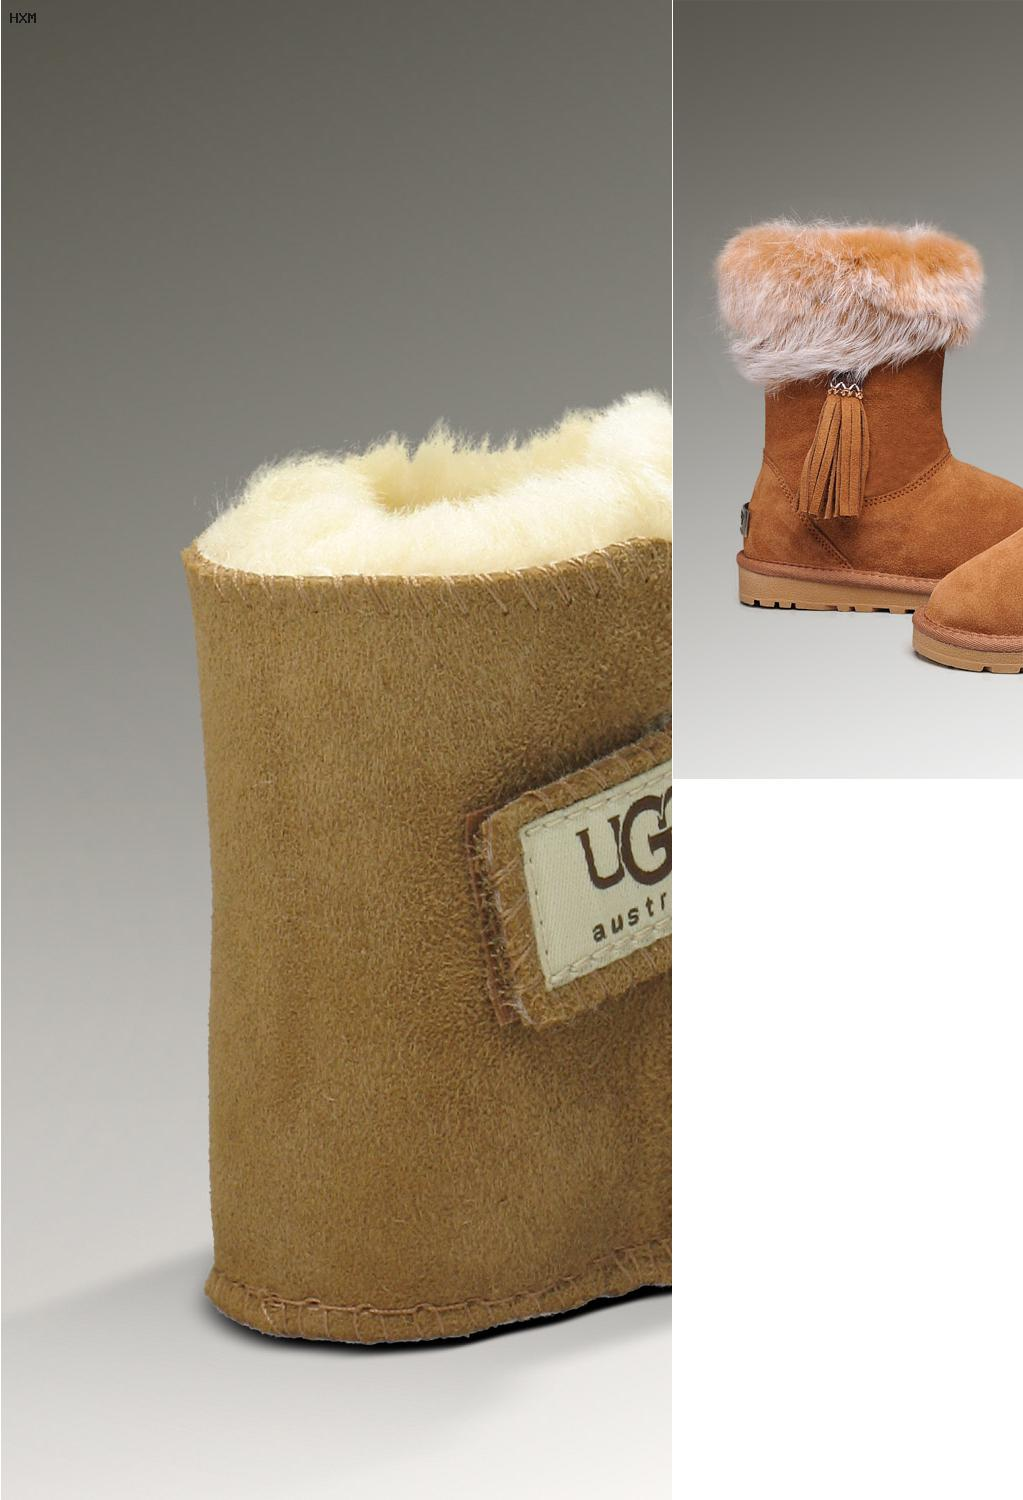 las ugg son impermeables